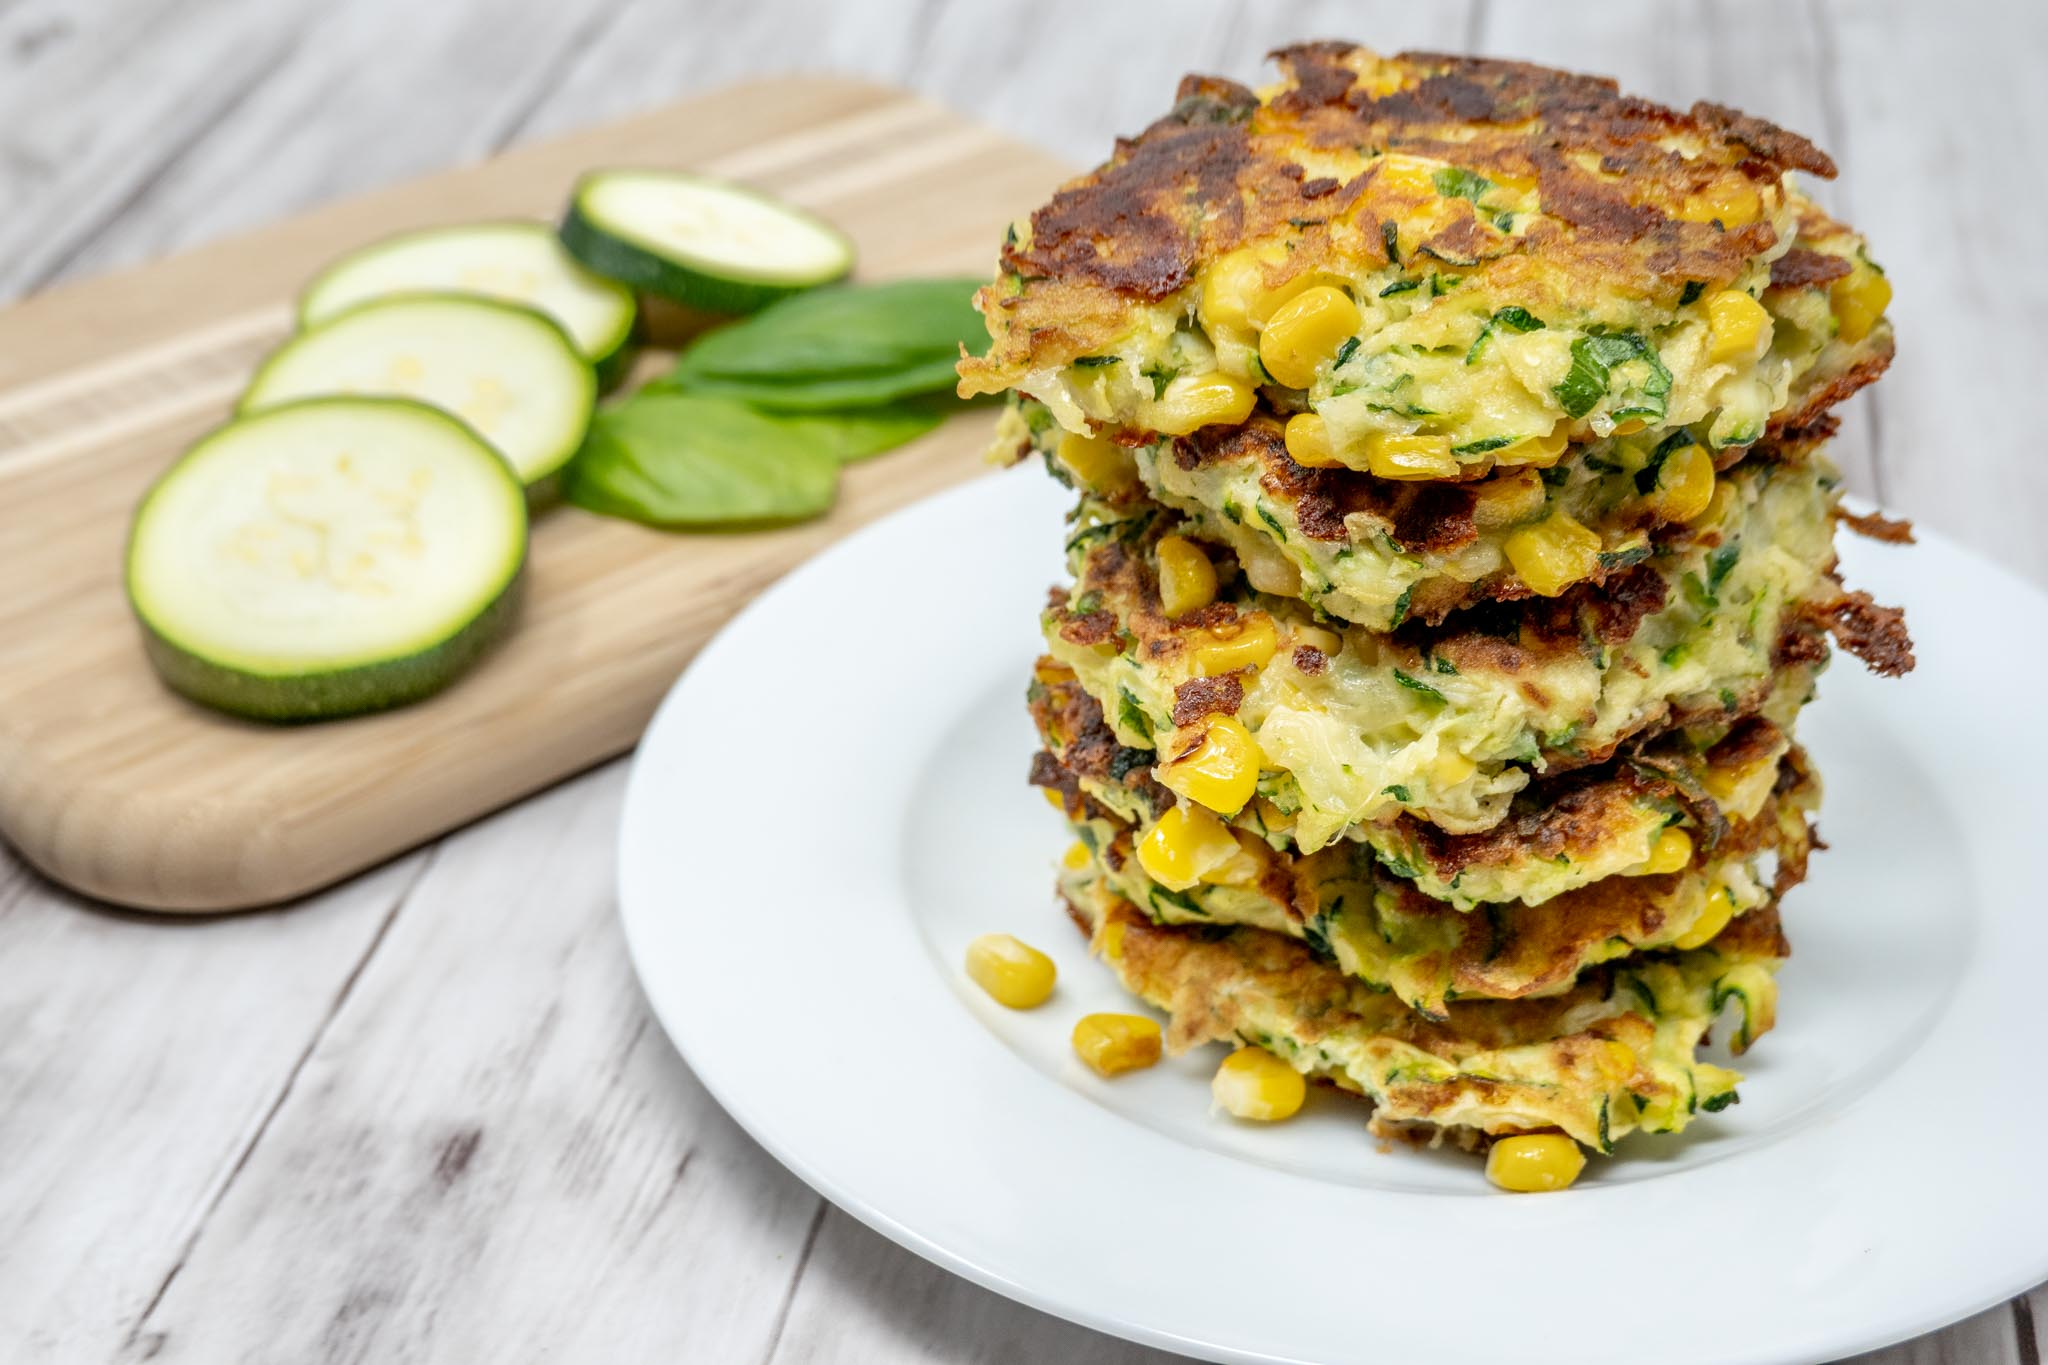 Stack of corn and zucchini fritters on a plate beside slices of zucchini